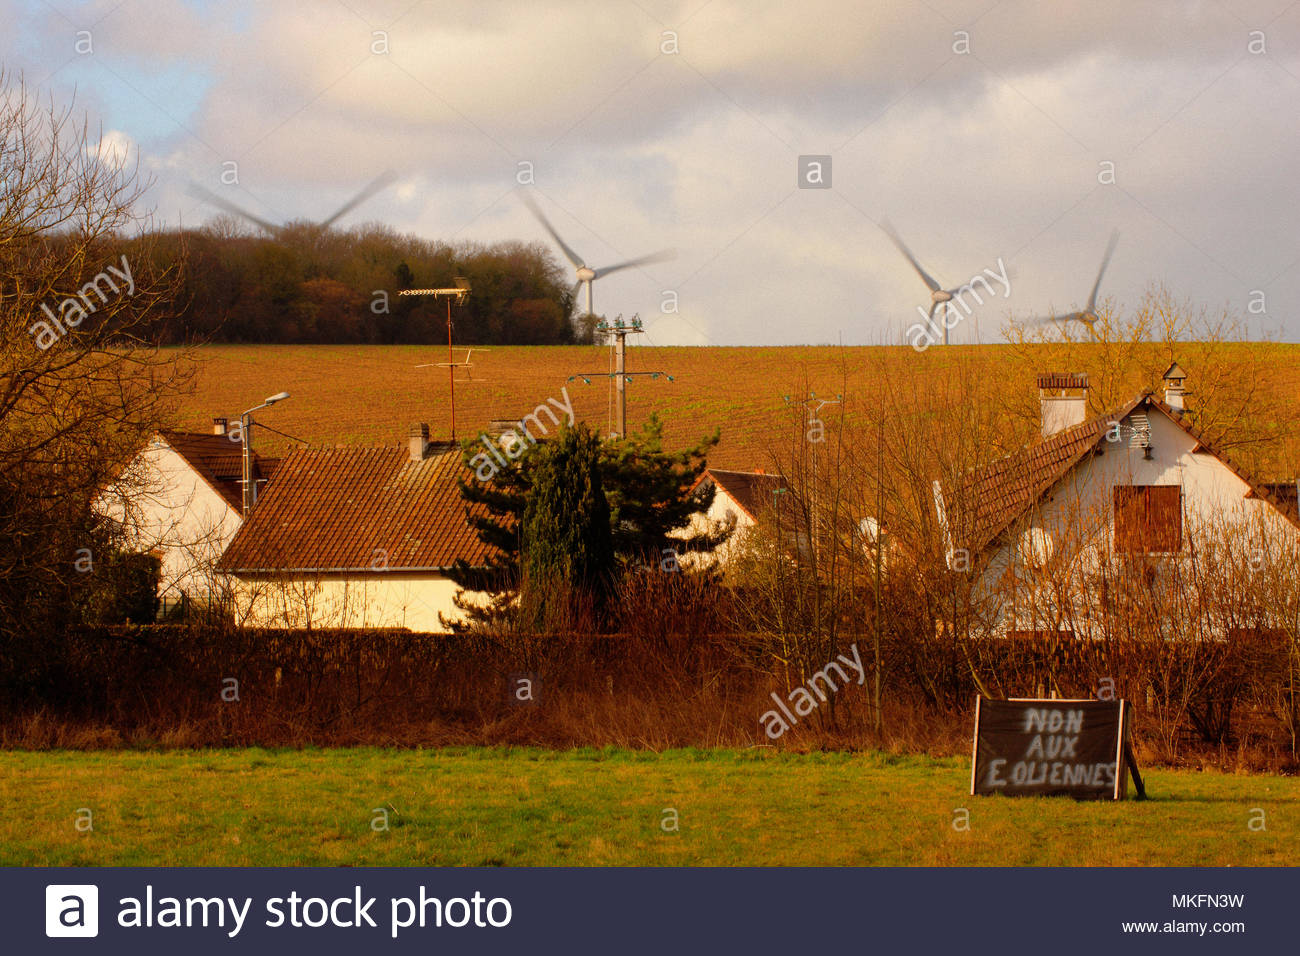 Signpost with a protest message against a project to install new additional wind turbines near a village, in Picardie - France. Noise pollution. - Stock Image